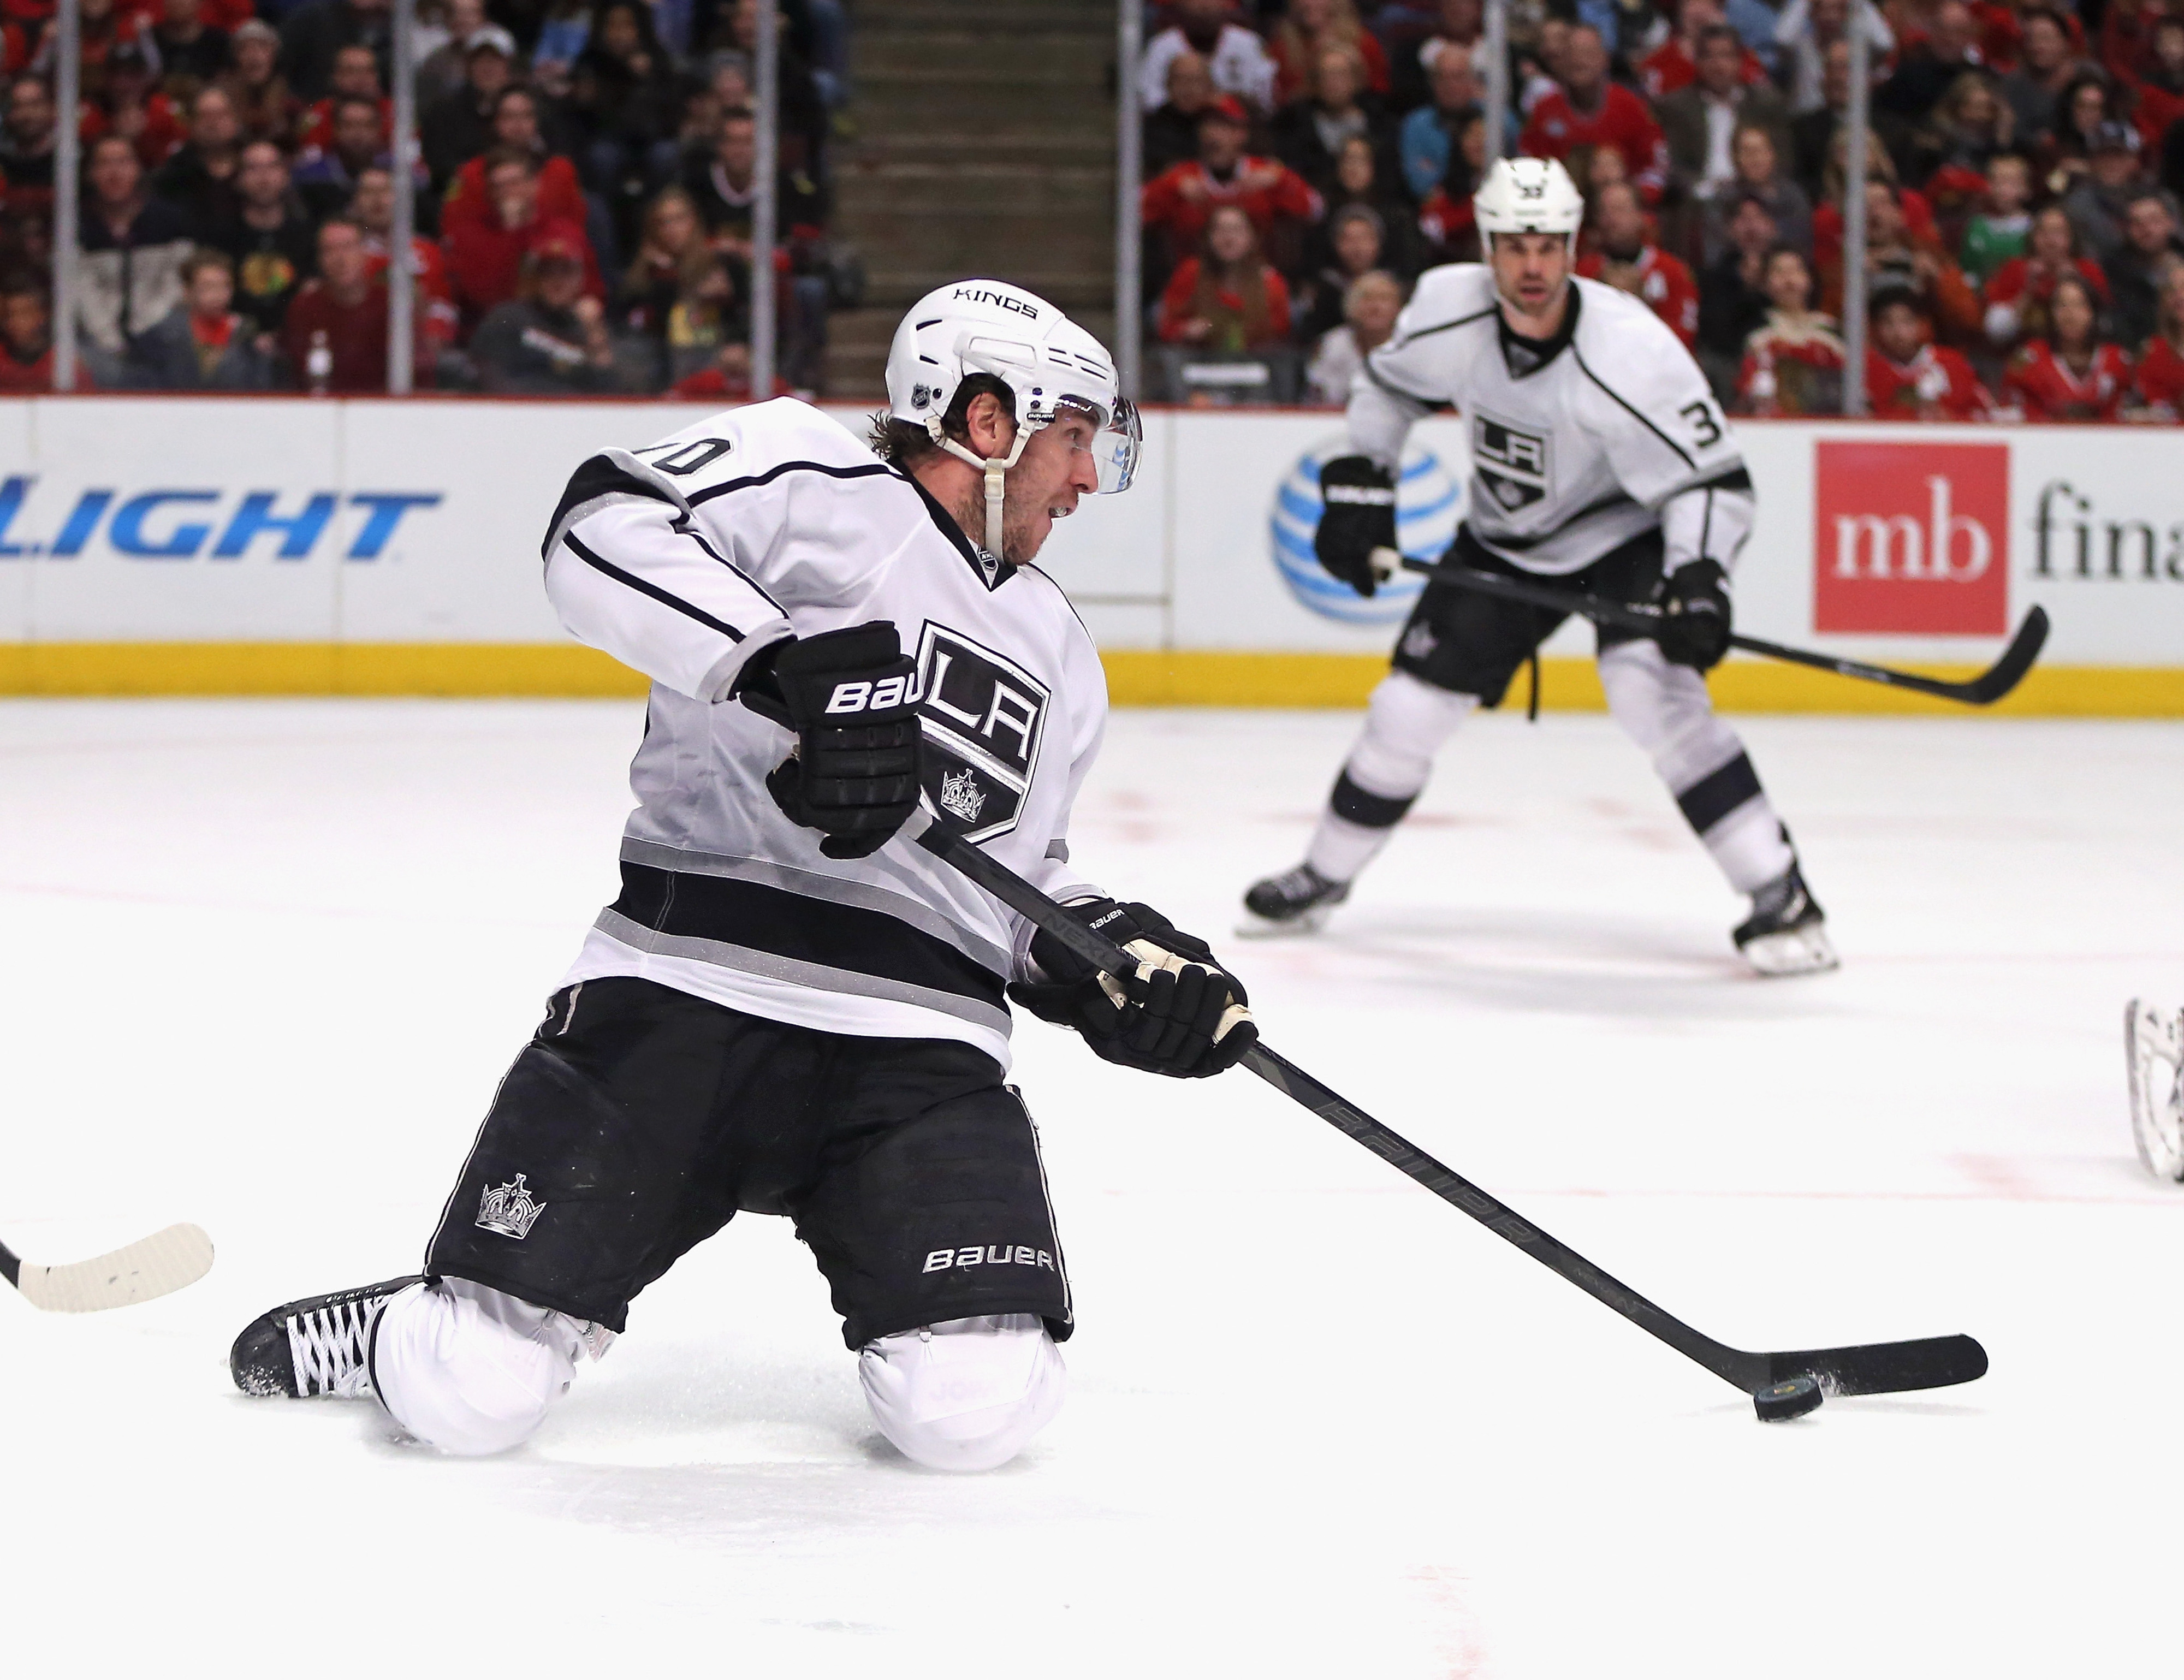 Picture of Mike Richards blowing the game